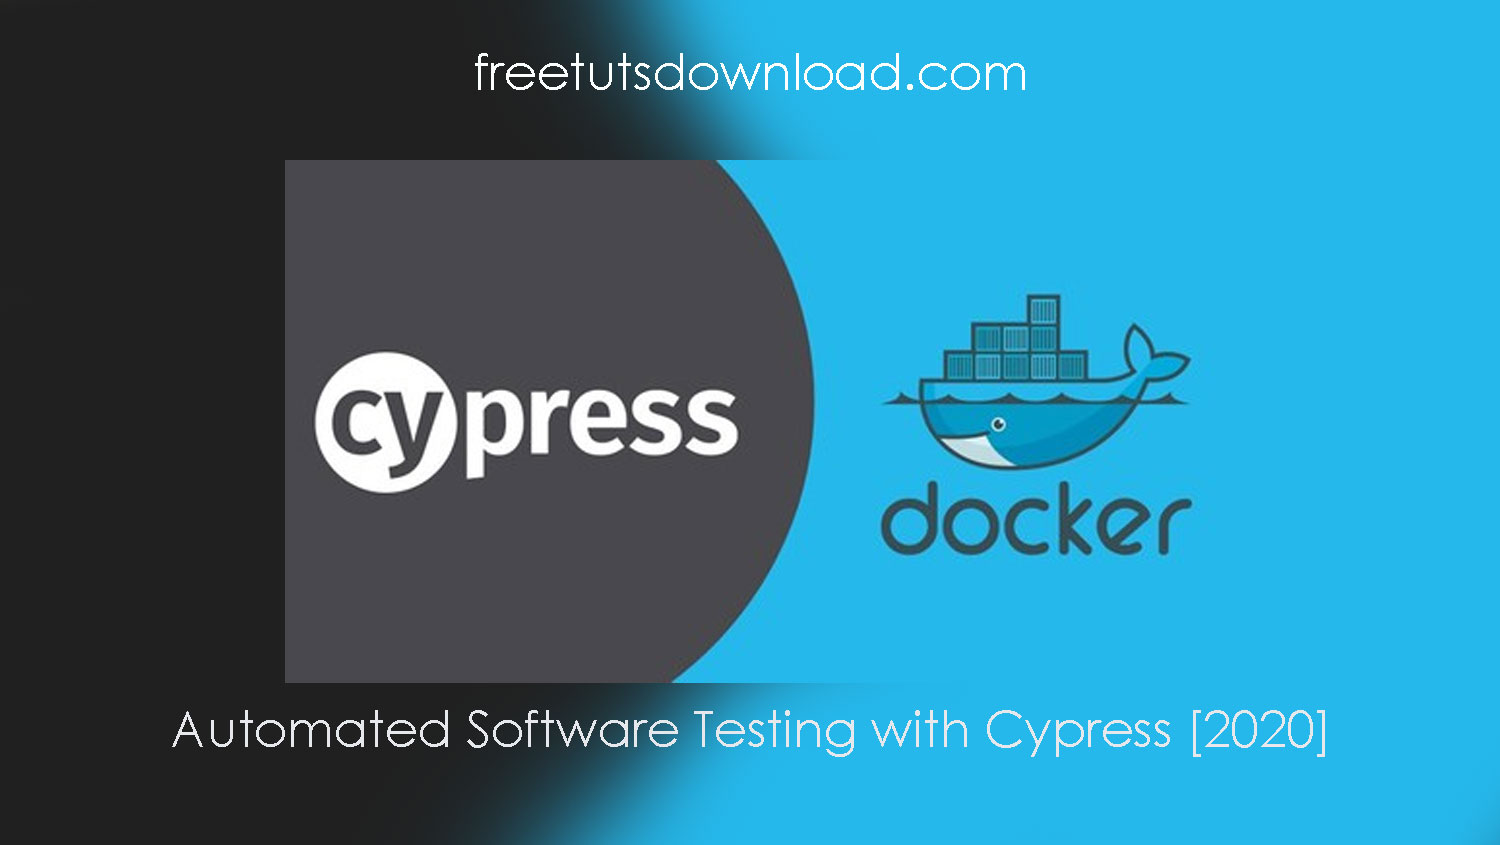 Automated Software Testing with Cypress [2020] free download